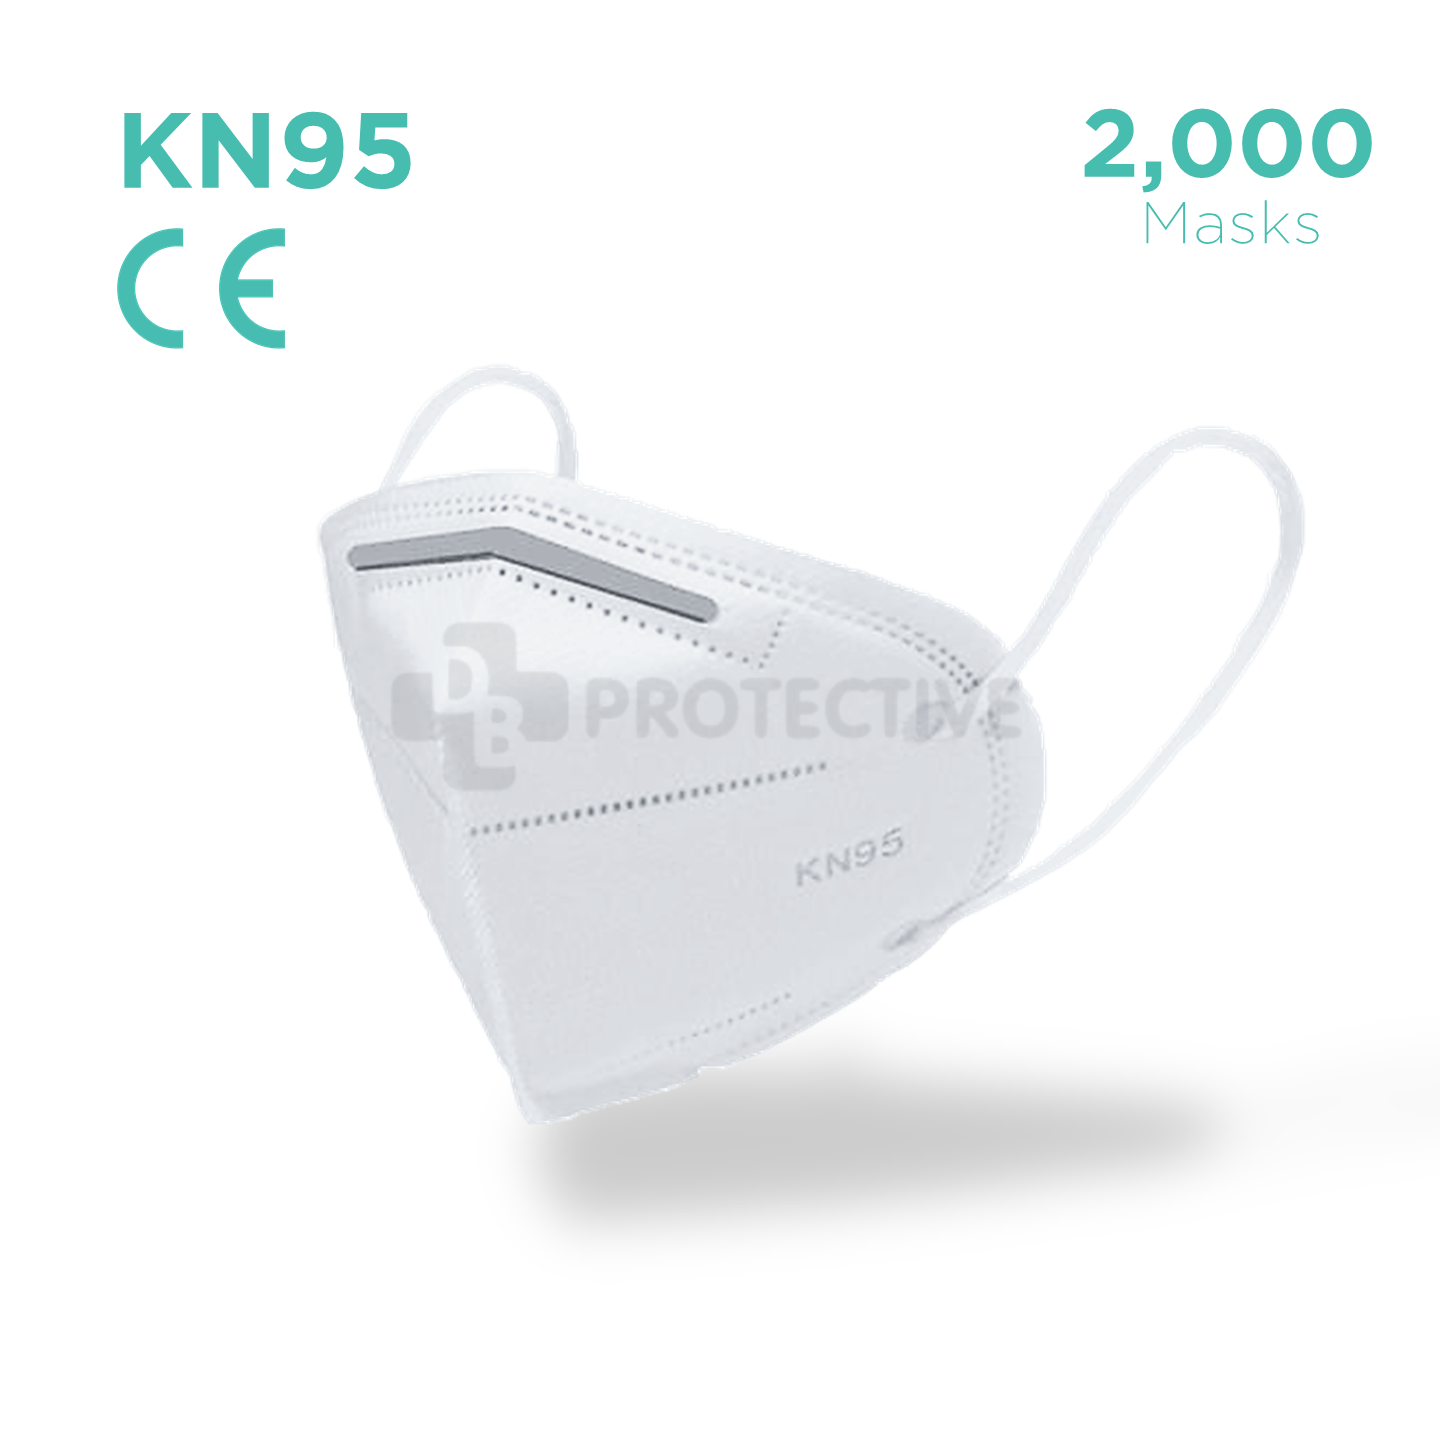 KN95 Face mask - Pack of 2000. - USA Medical Supply - DB Protective